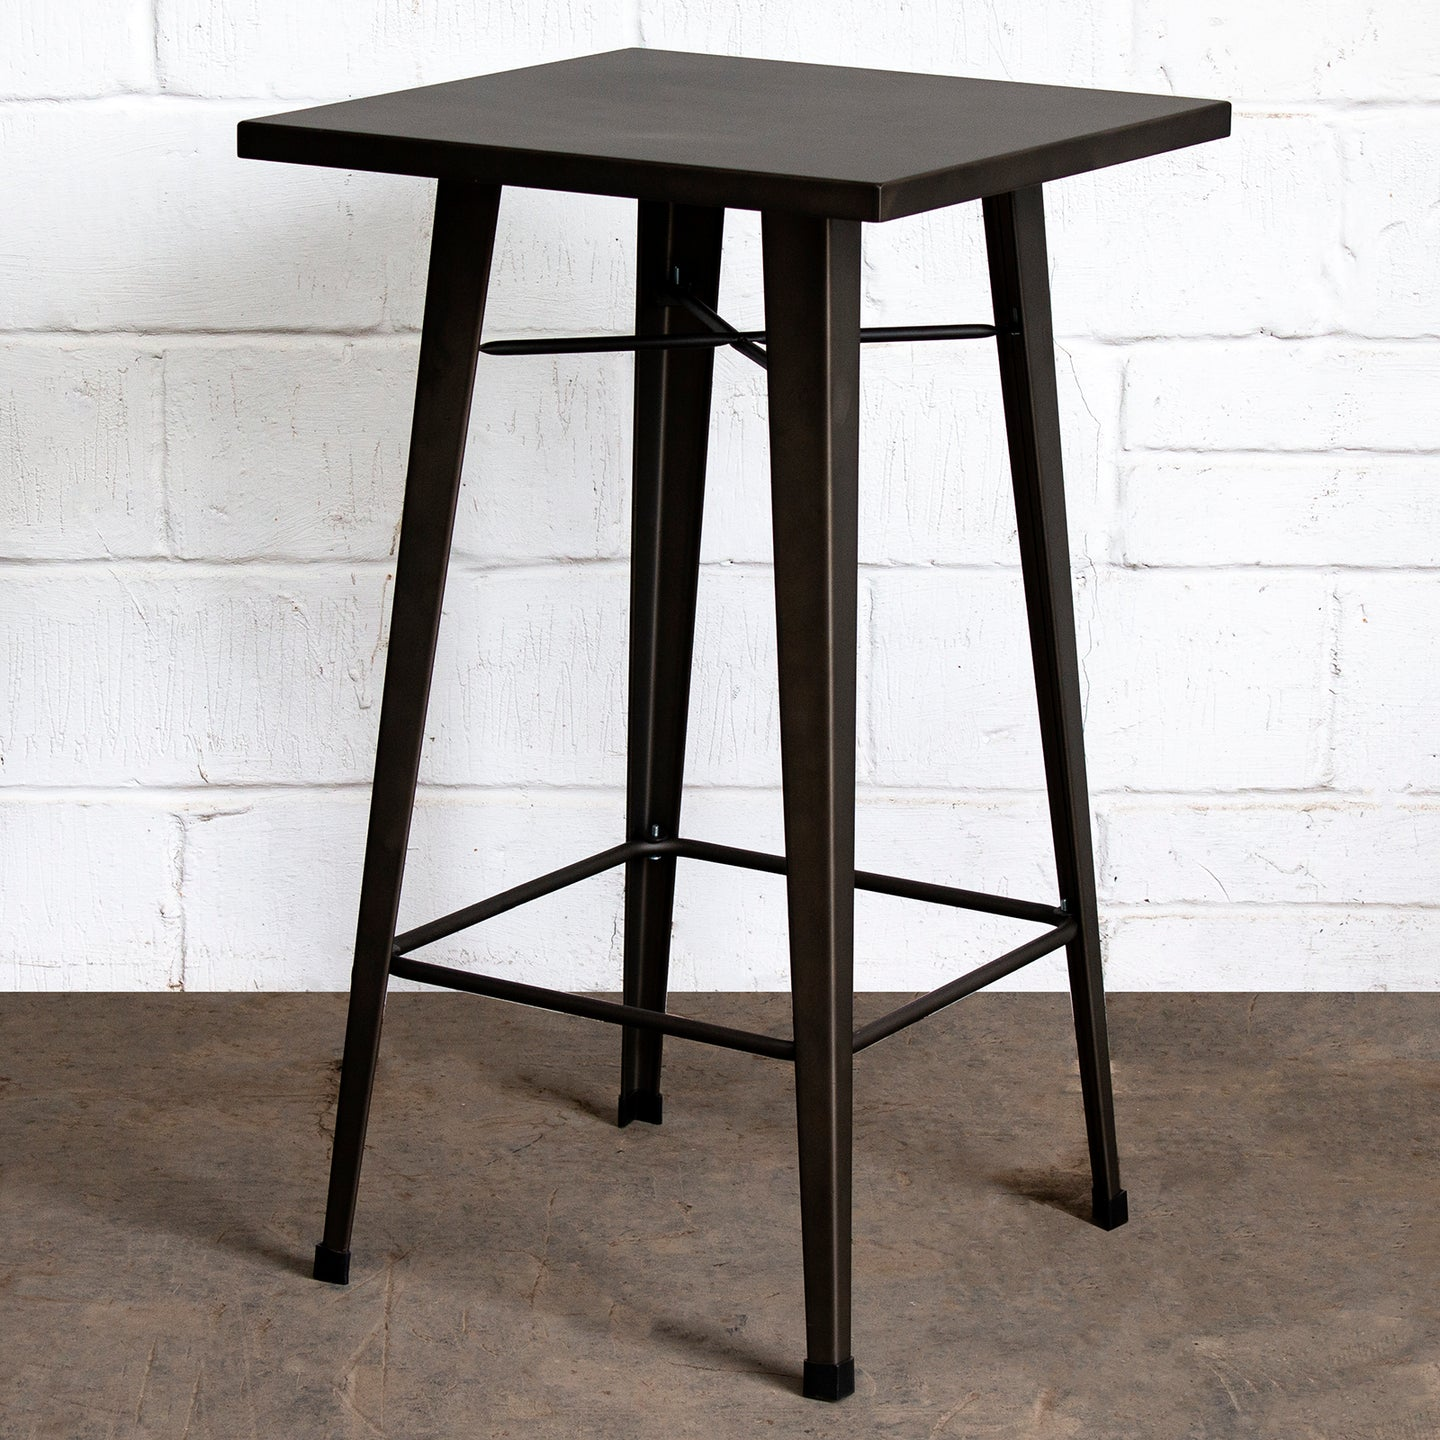 Laus Table - Gun Metal Grey